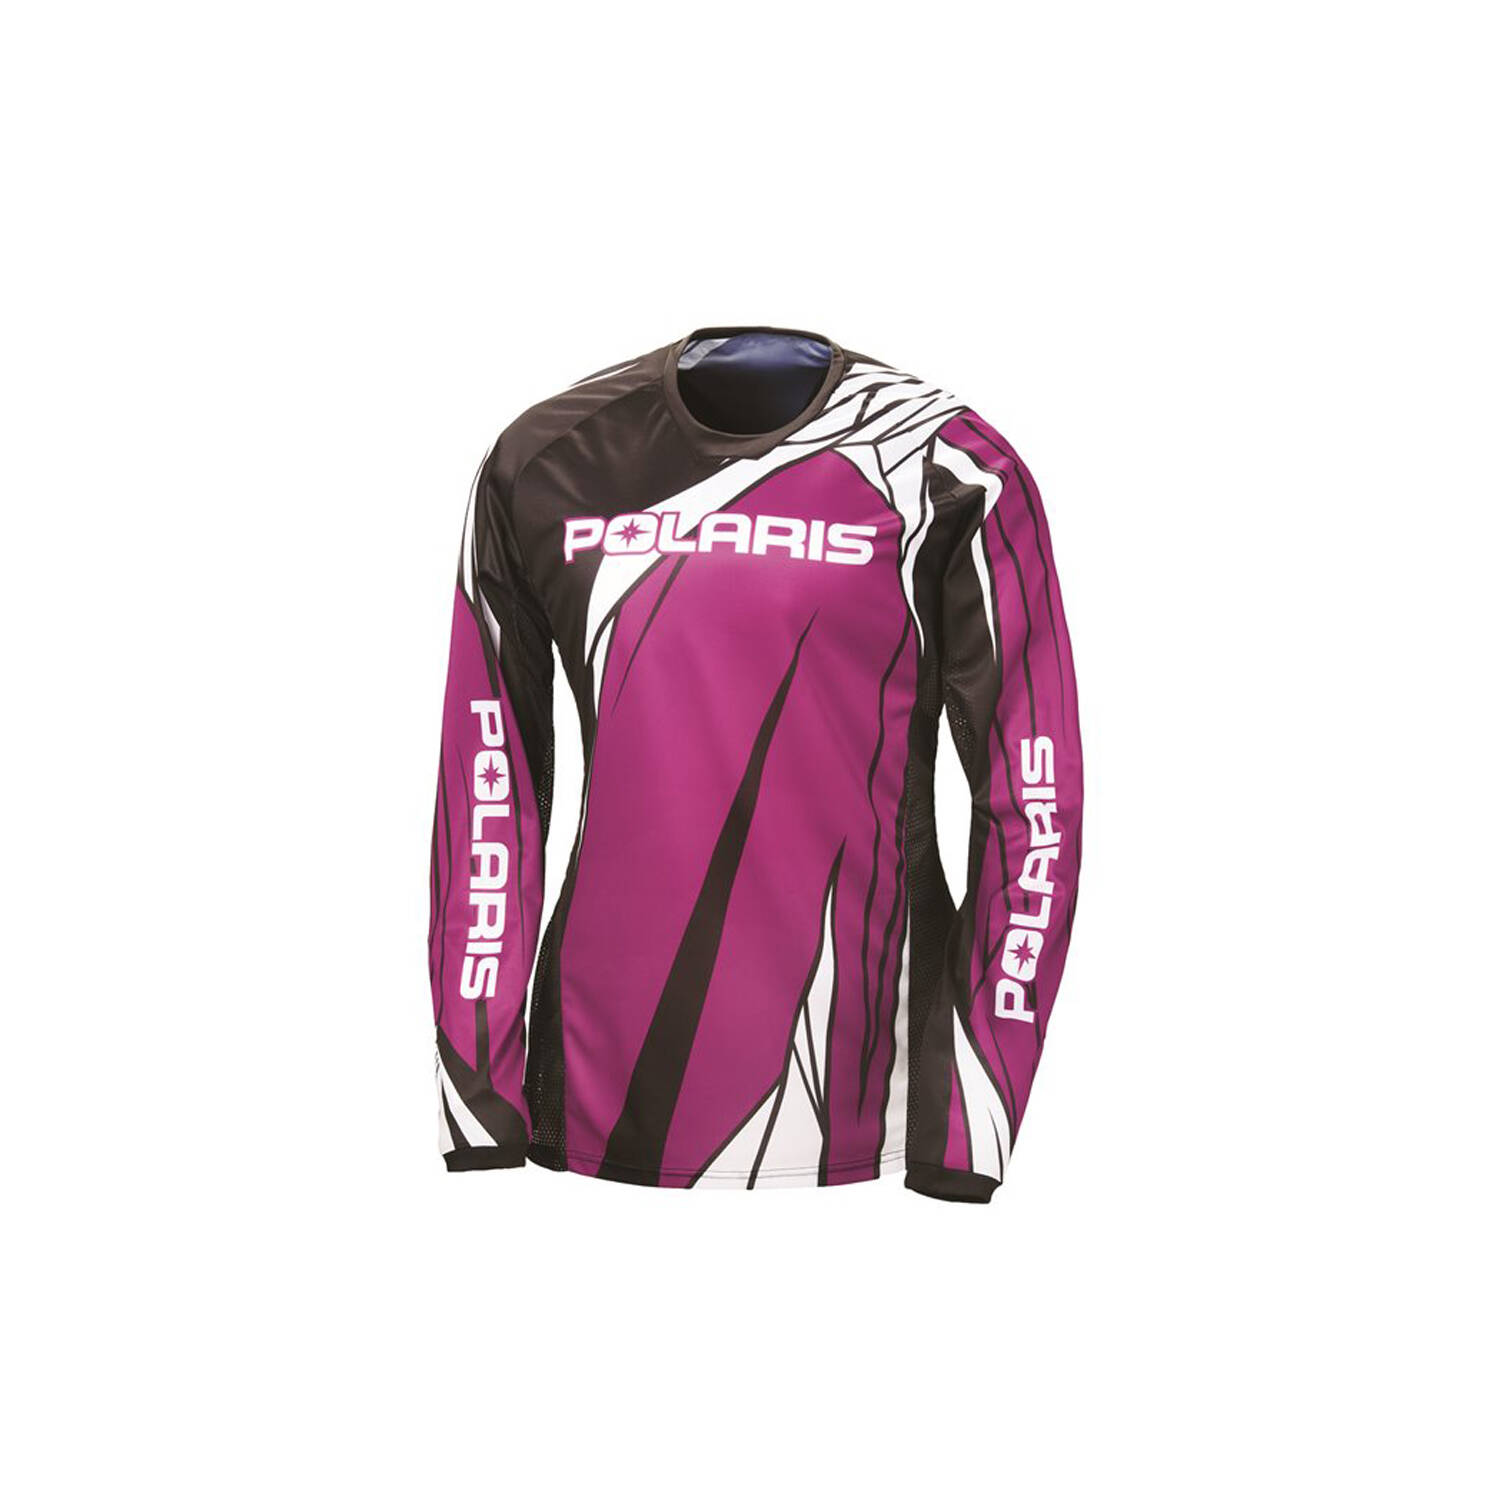 Unisex Long-Sleeve Off-Road Riding Jersey with Mesh Ventilated Panels, Pink